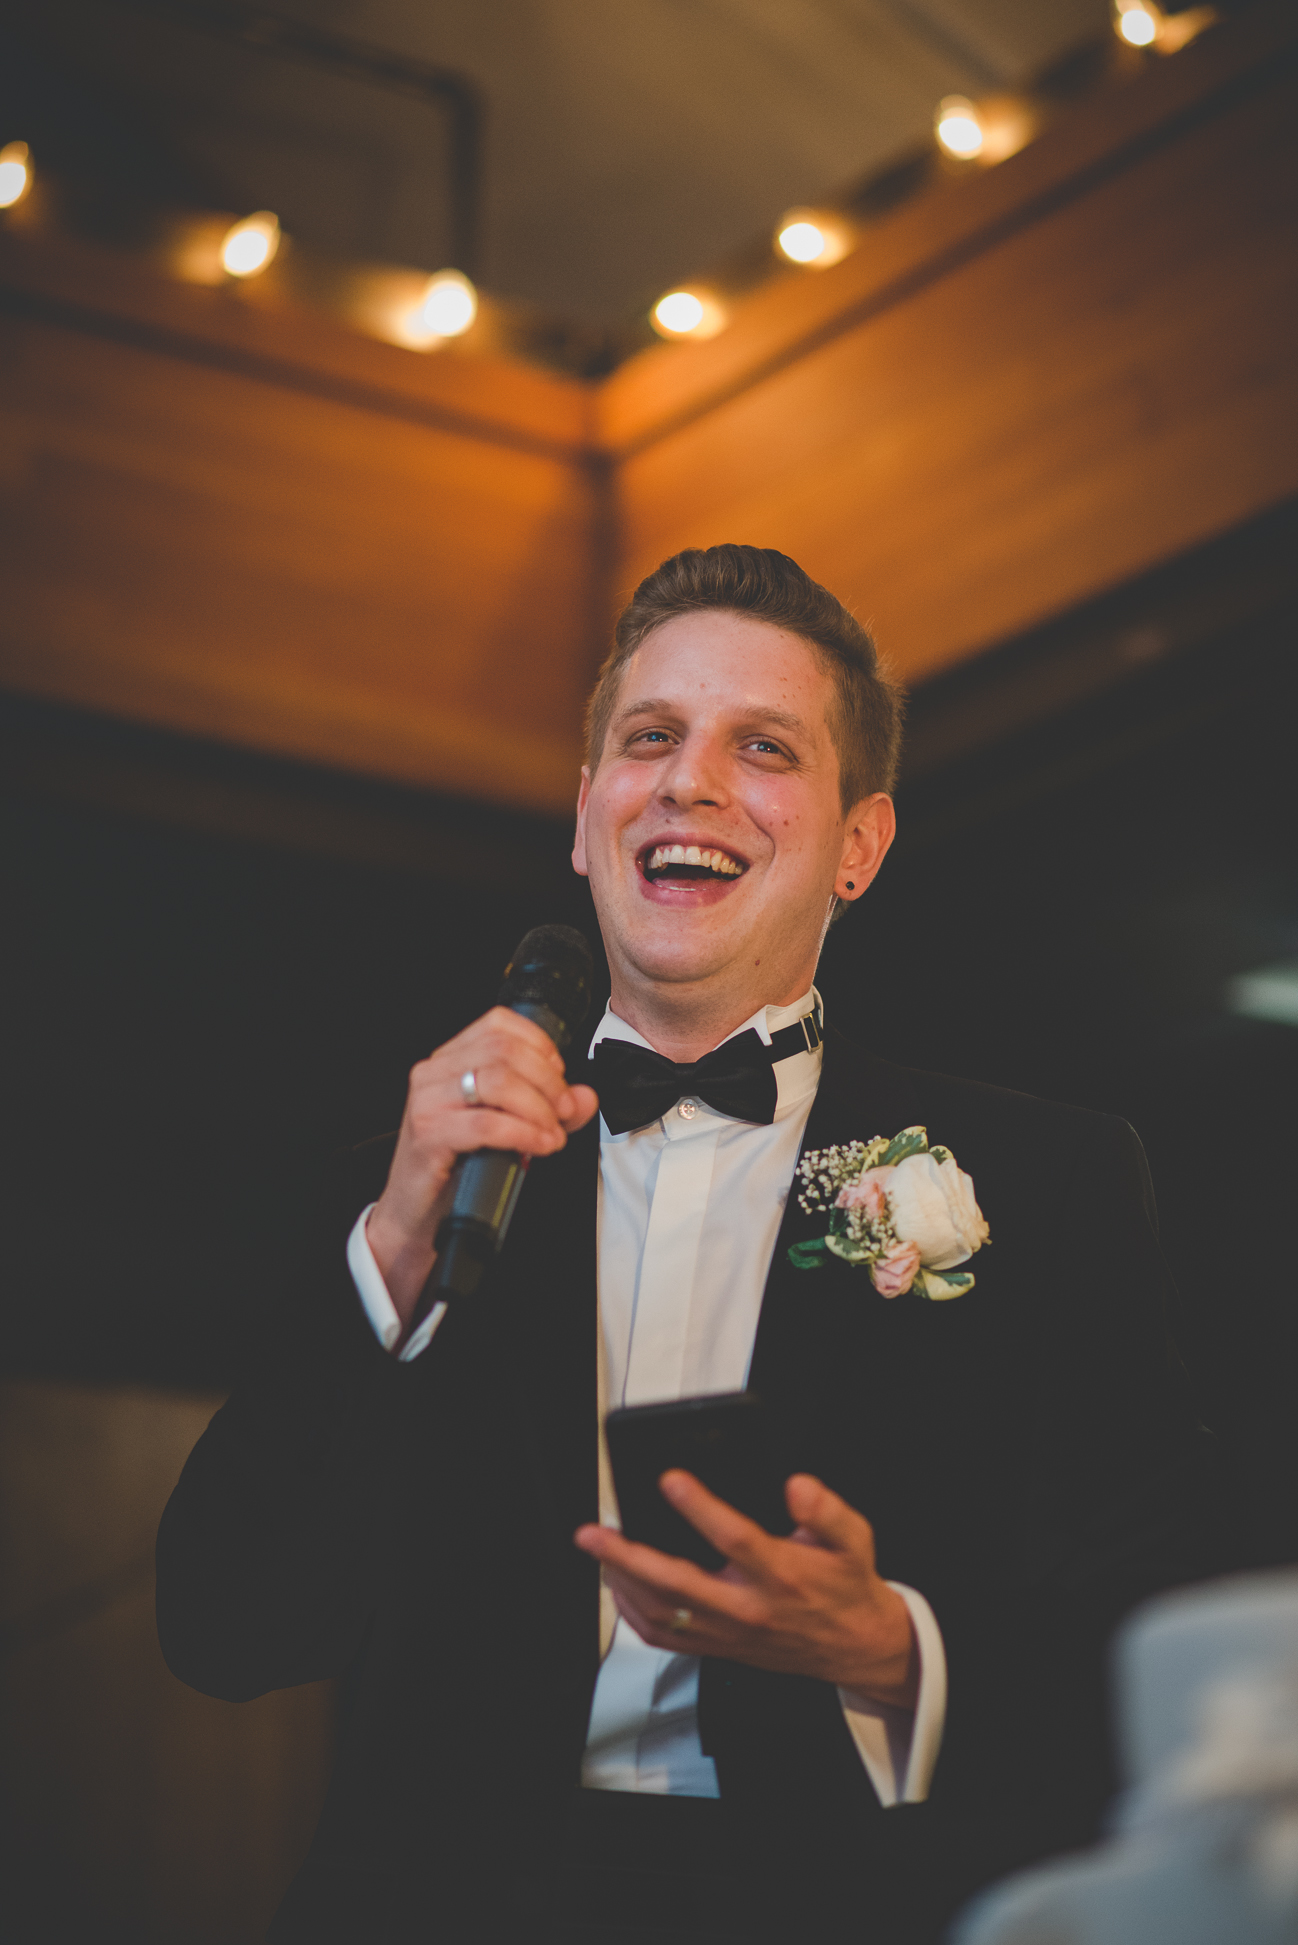 groom giving thank you speech and laughing at wedding reception